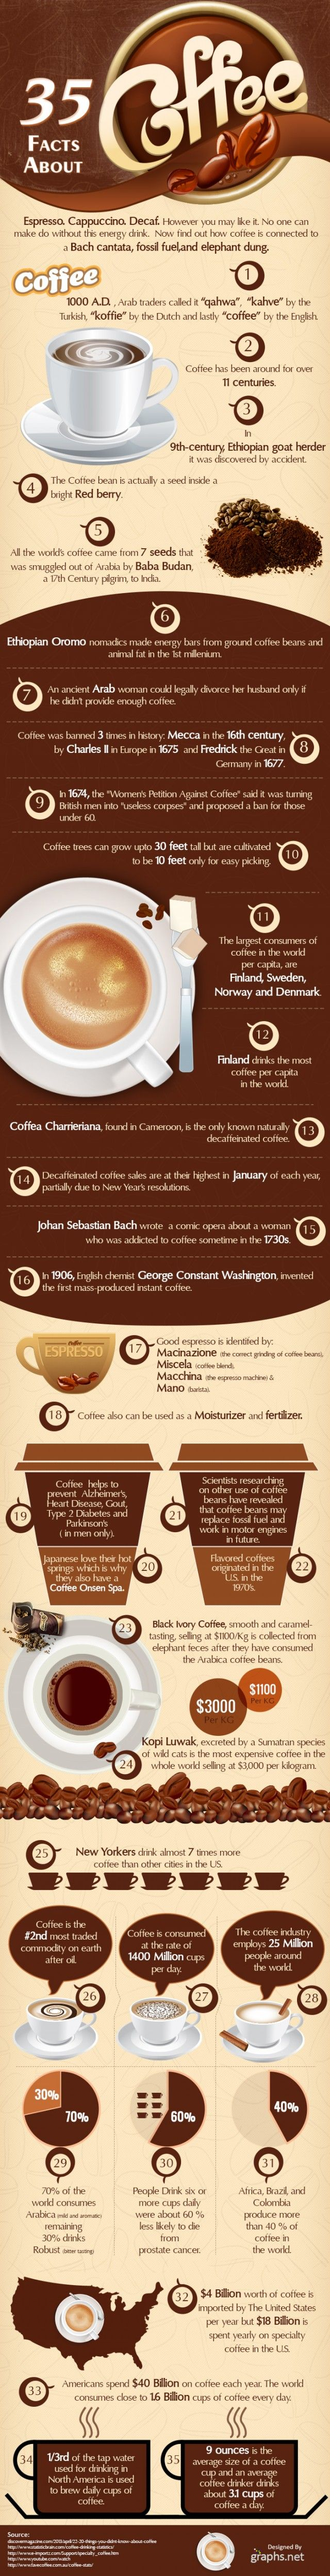 35 Interesting Facts About Coffee [Infographic] | Daily Infographic